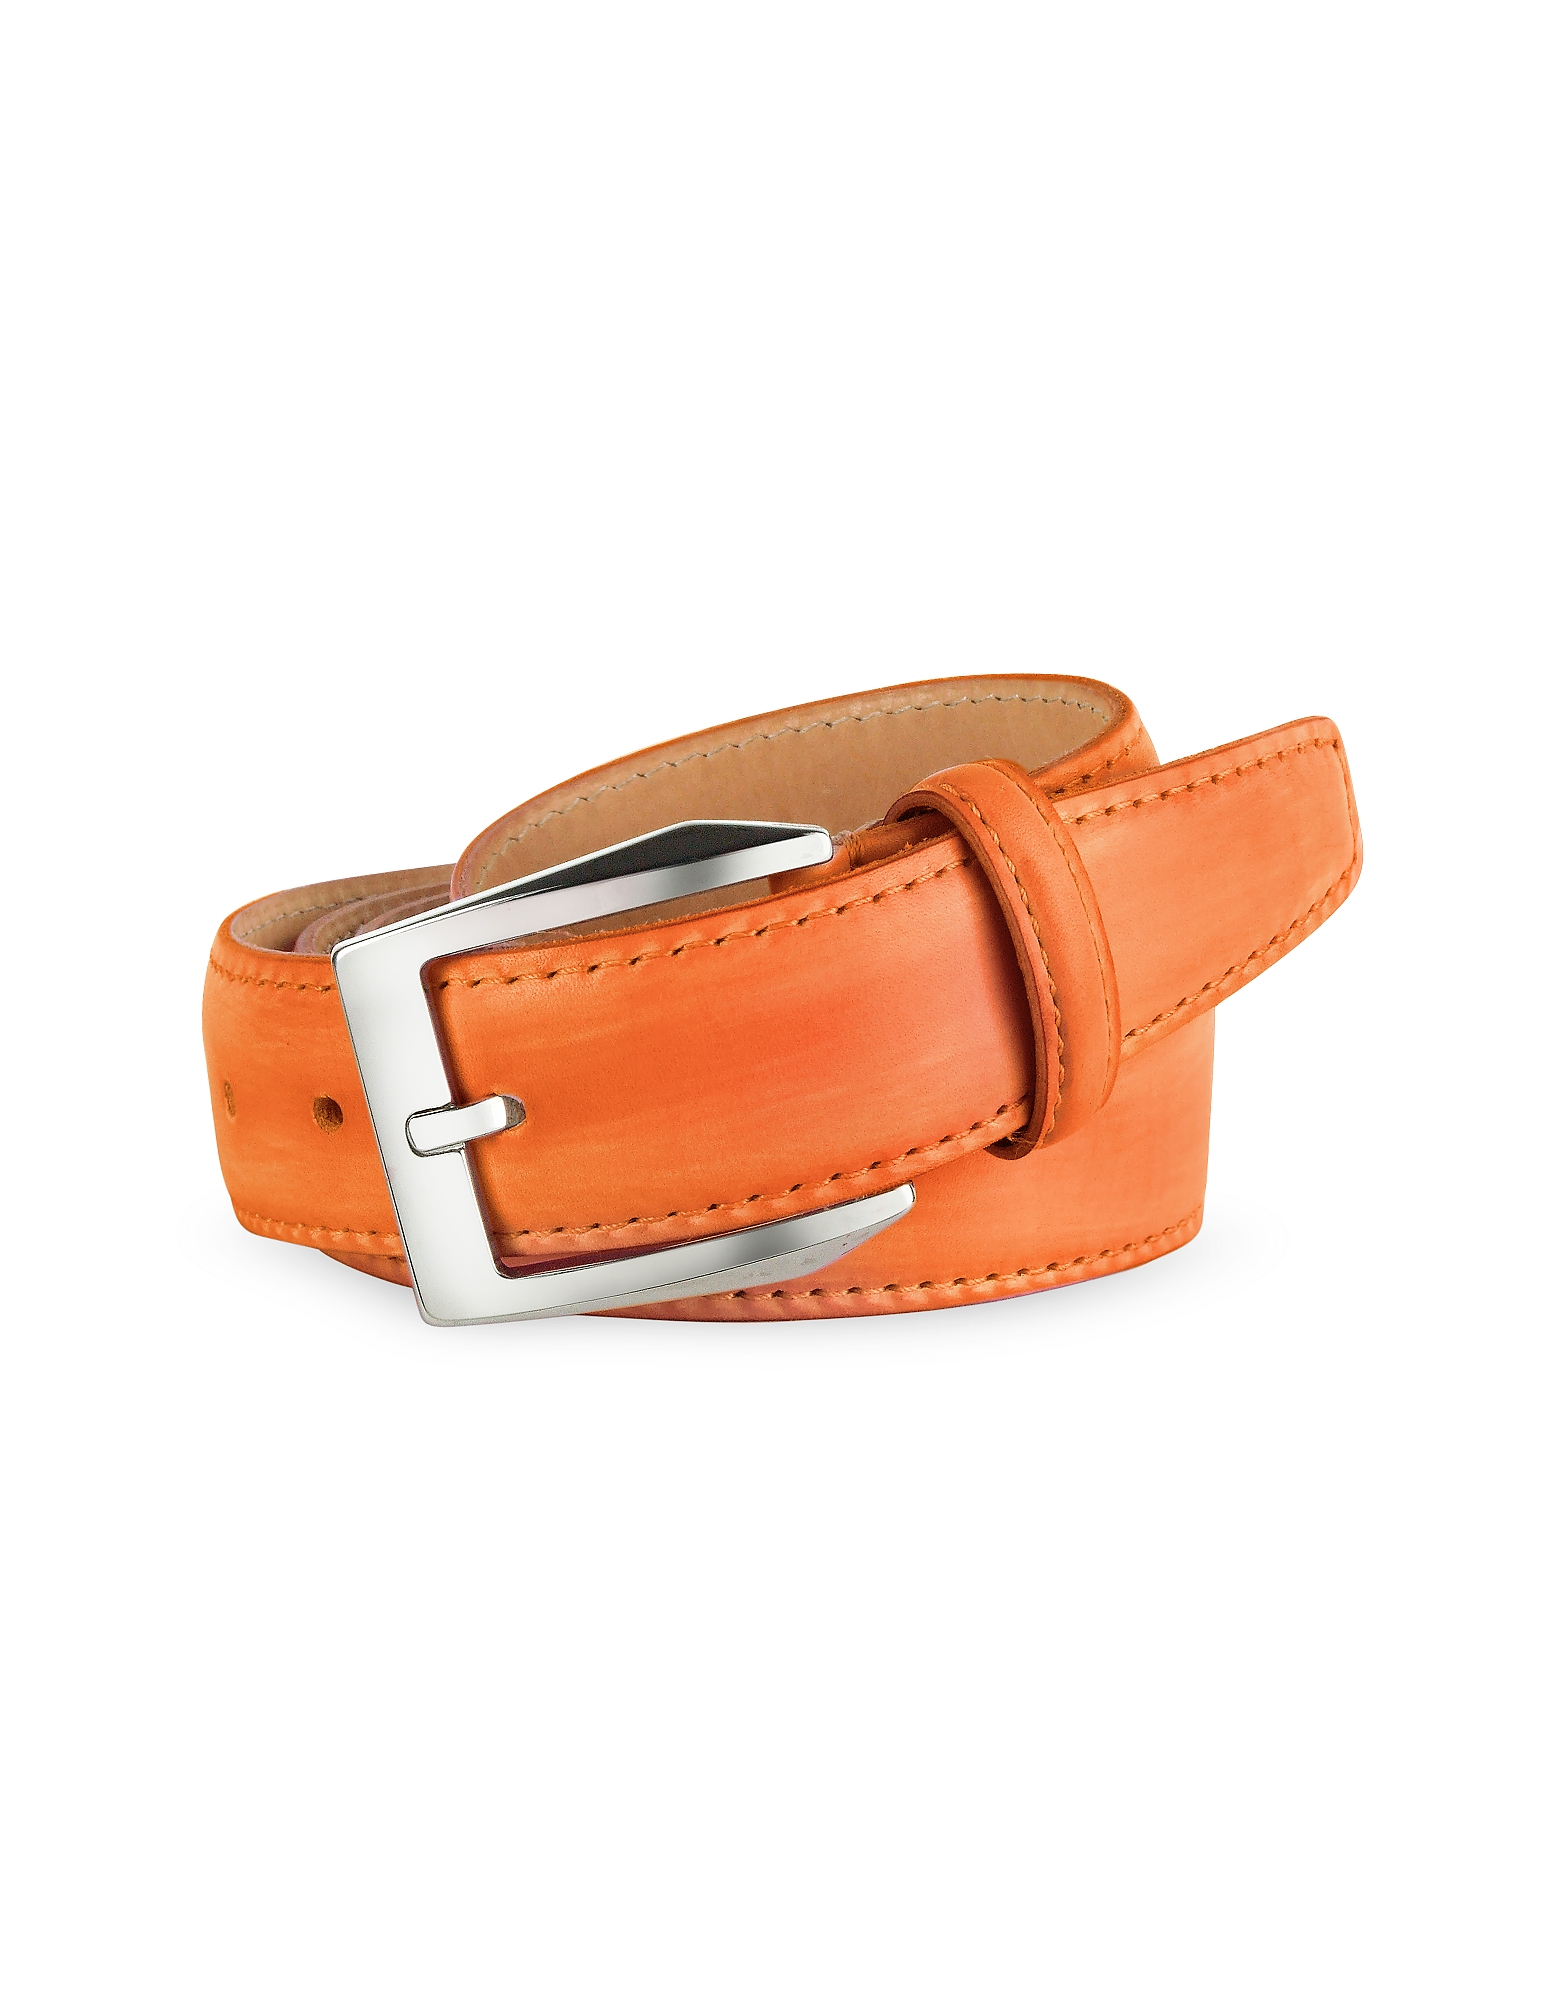 Image of Pakerson Designer Men's Belts, Men's Orange Hand Painted Italian Leather Belt